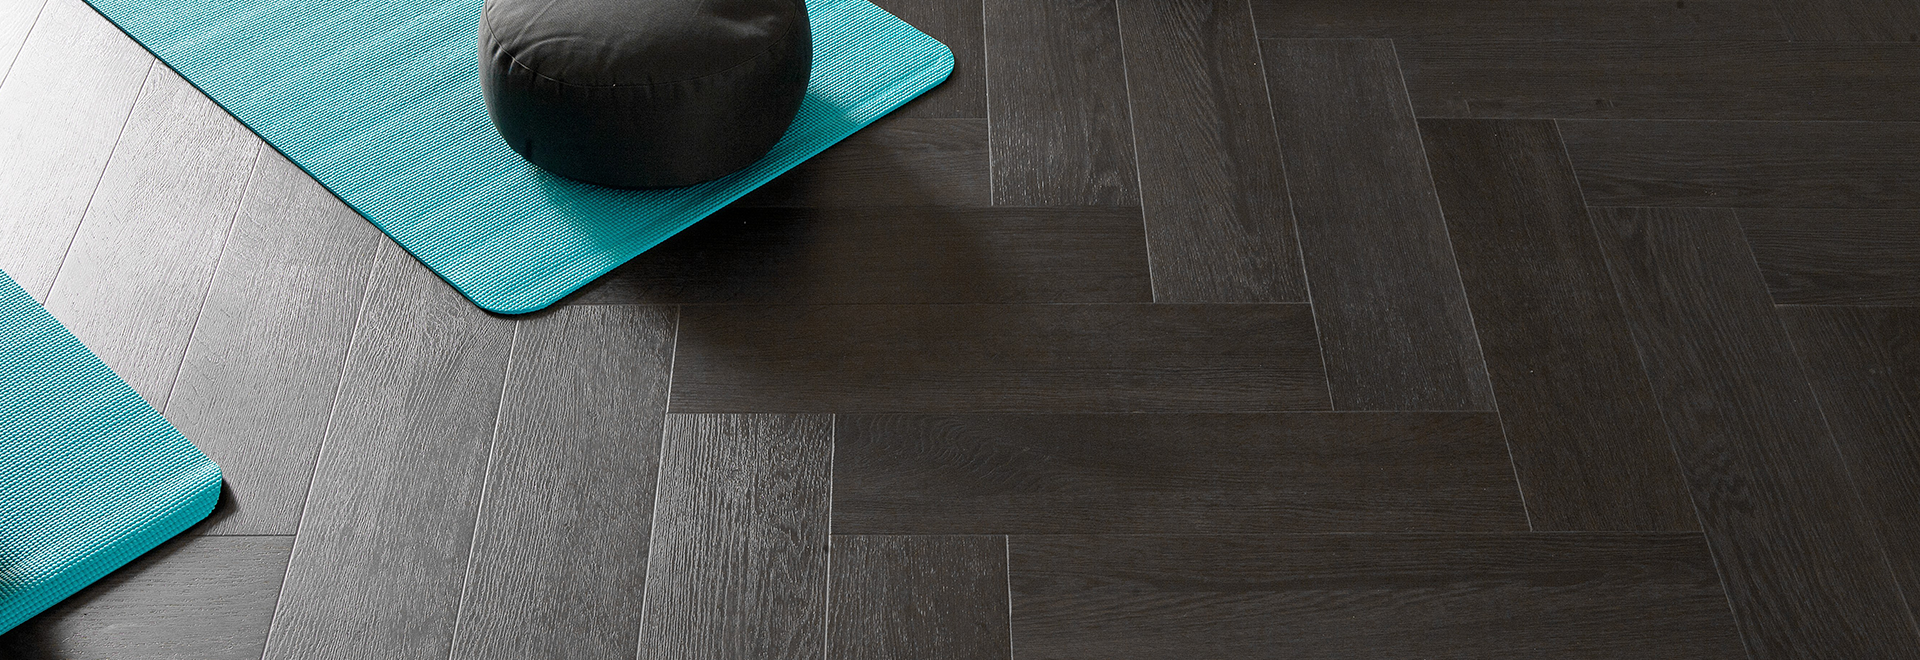 Therdex Herringbone-serie